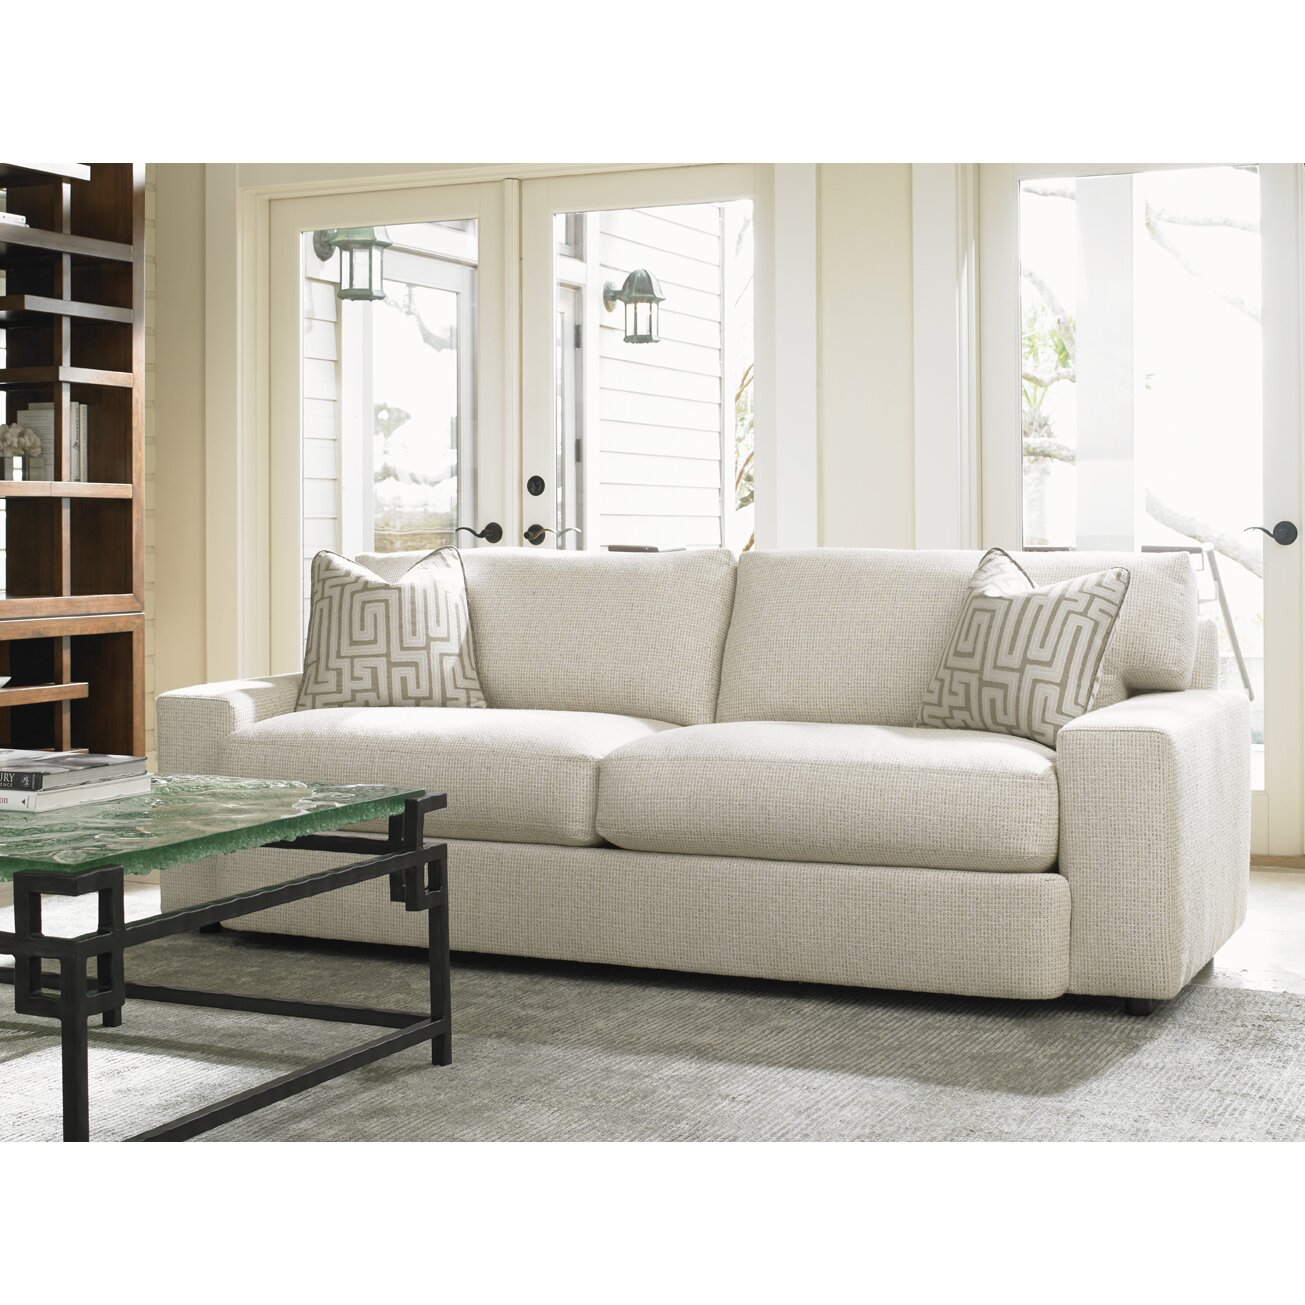 Colorful Tommy Bahama Living Room Furniture Mold - Living Room ...